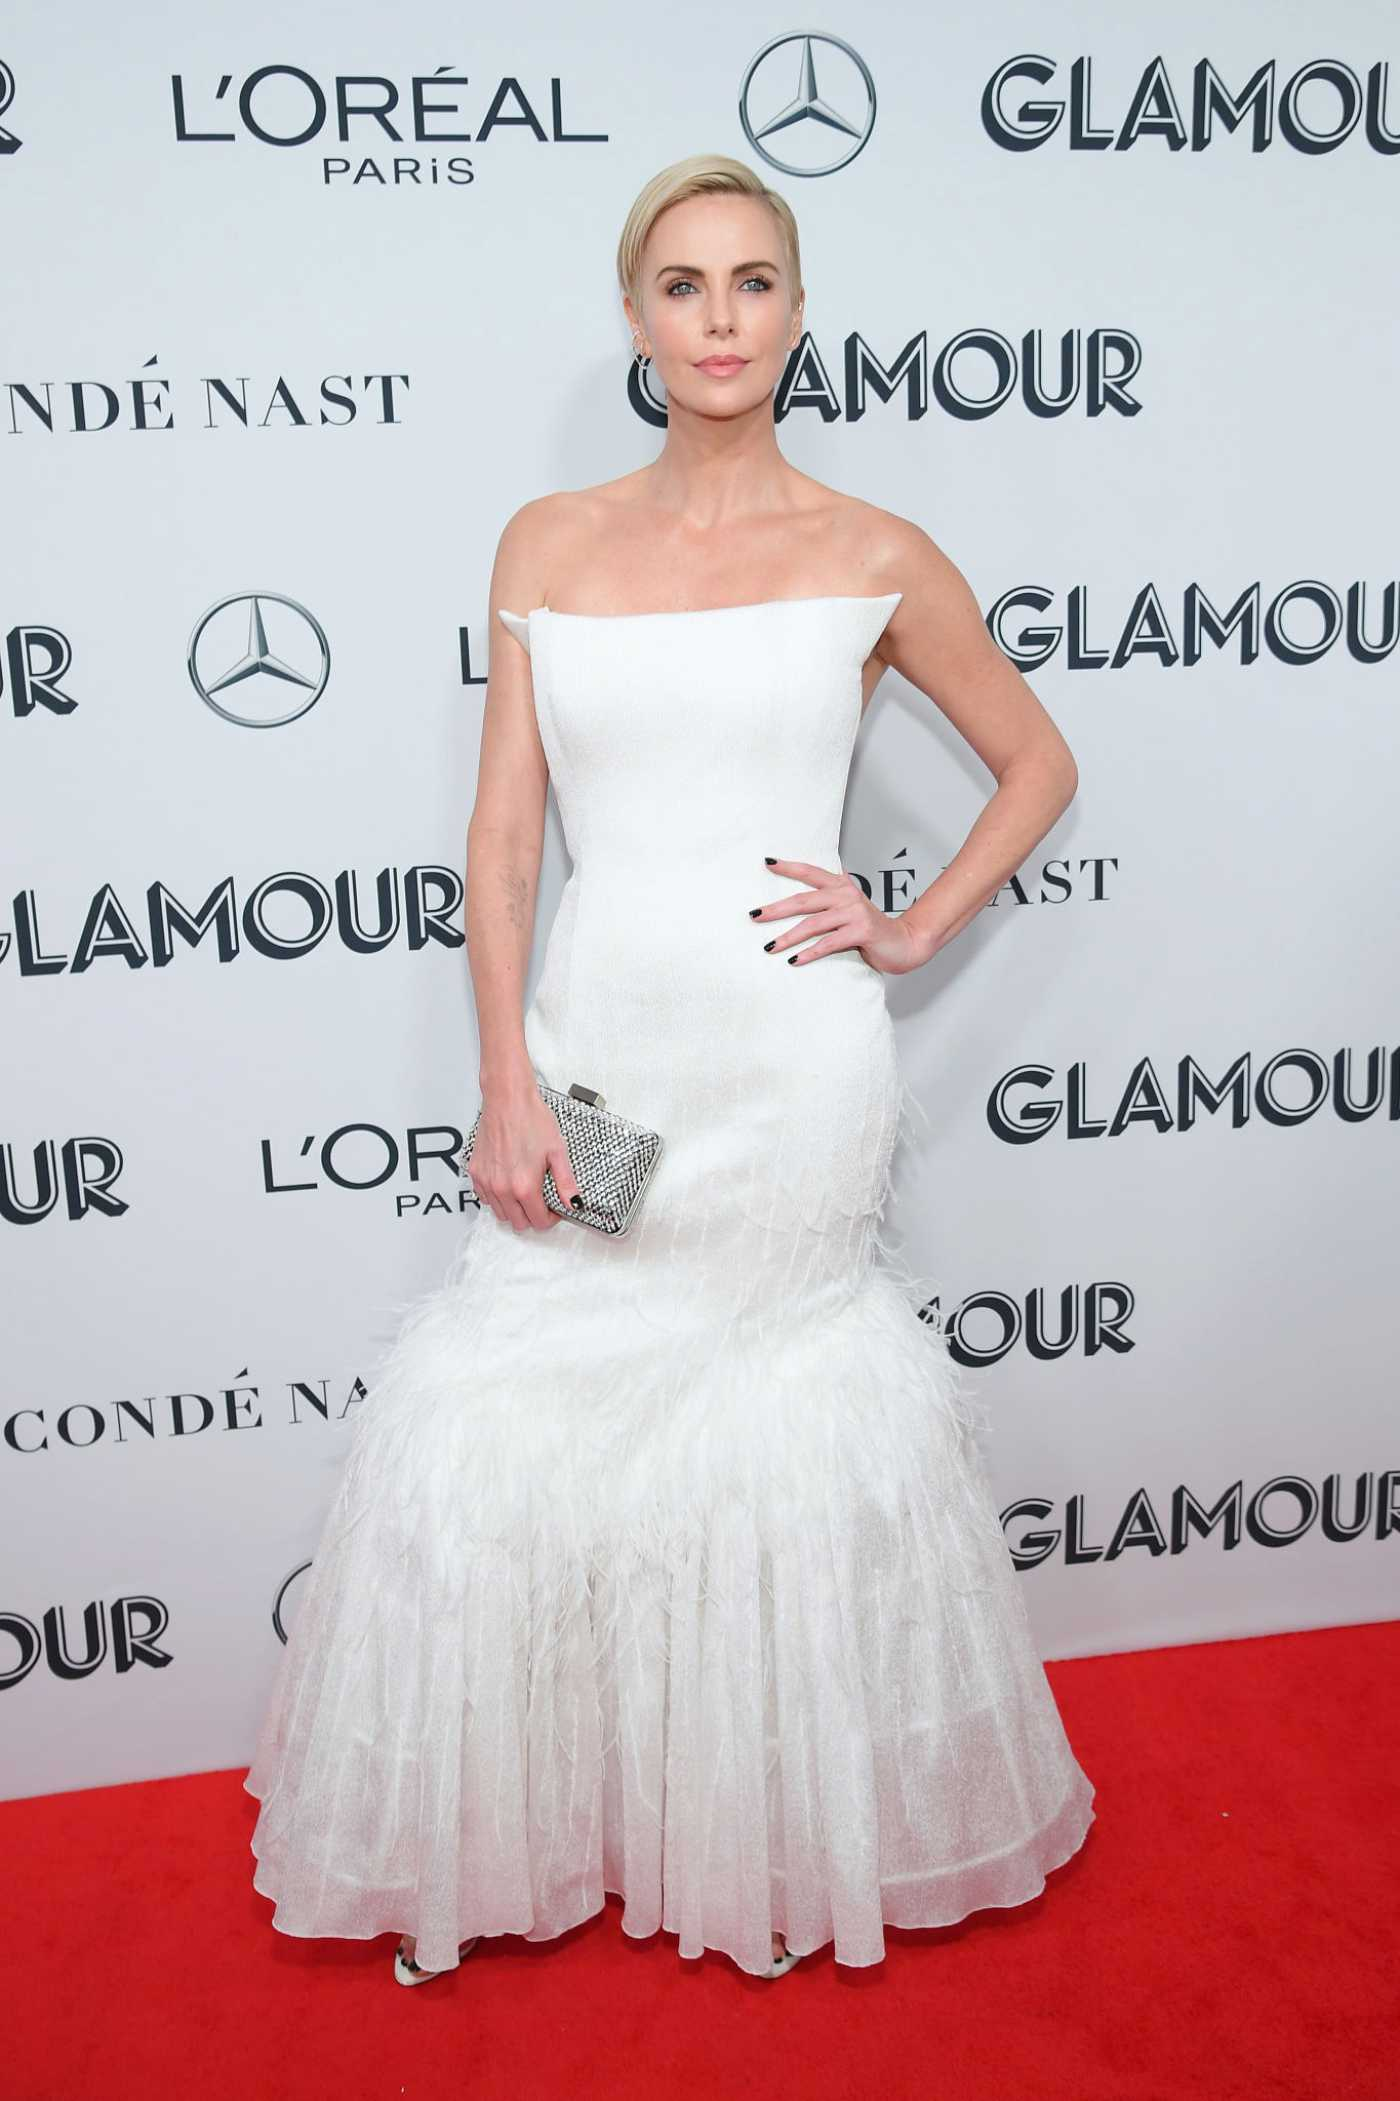 Charlize Theron Attends 2019 Glamour Women of The Year Awards at Alice Tully Center in New York City 11/11/2019